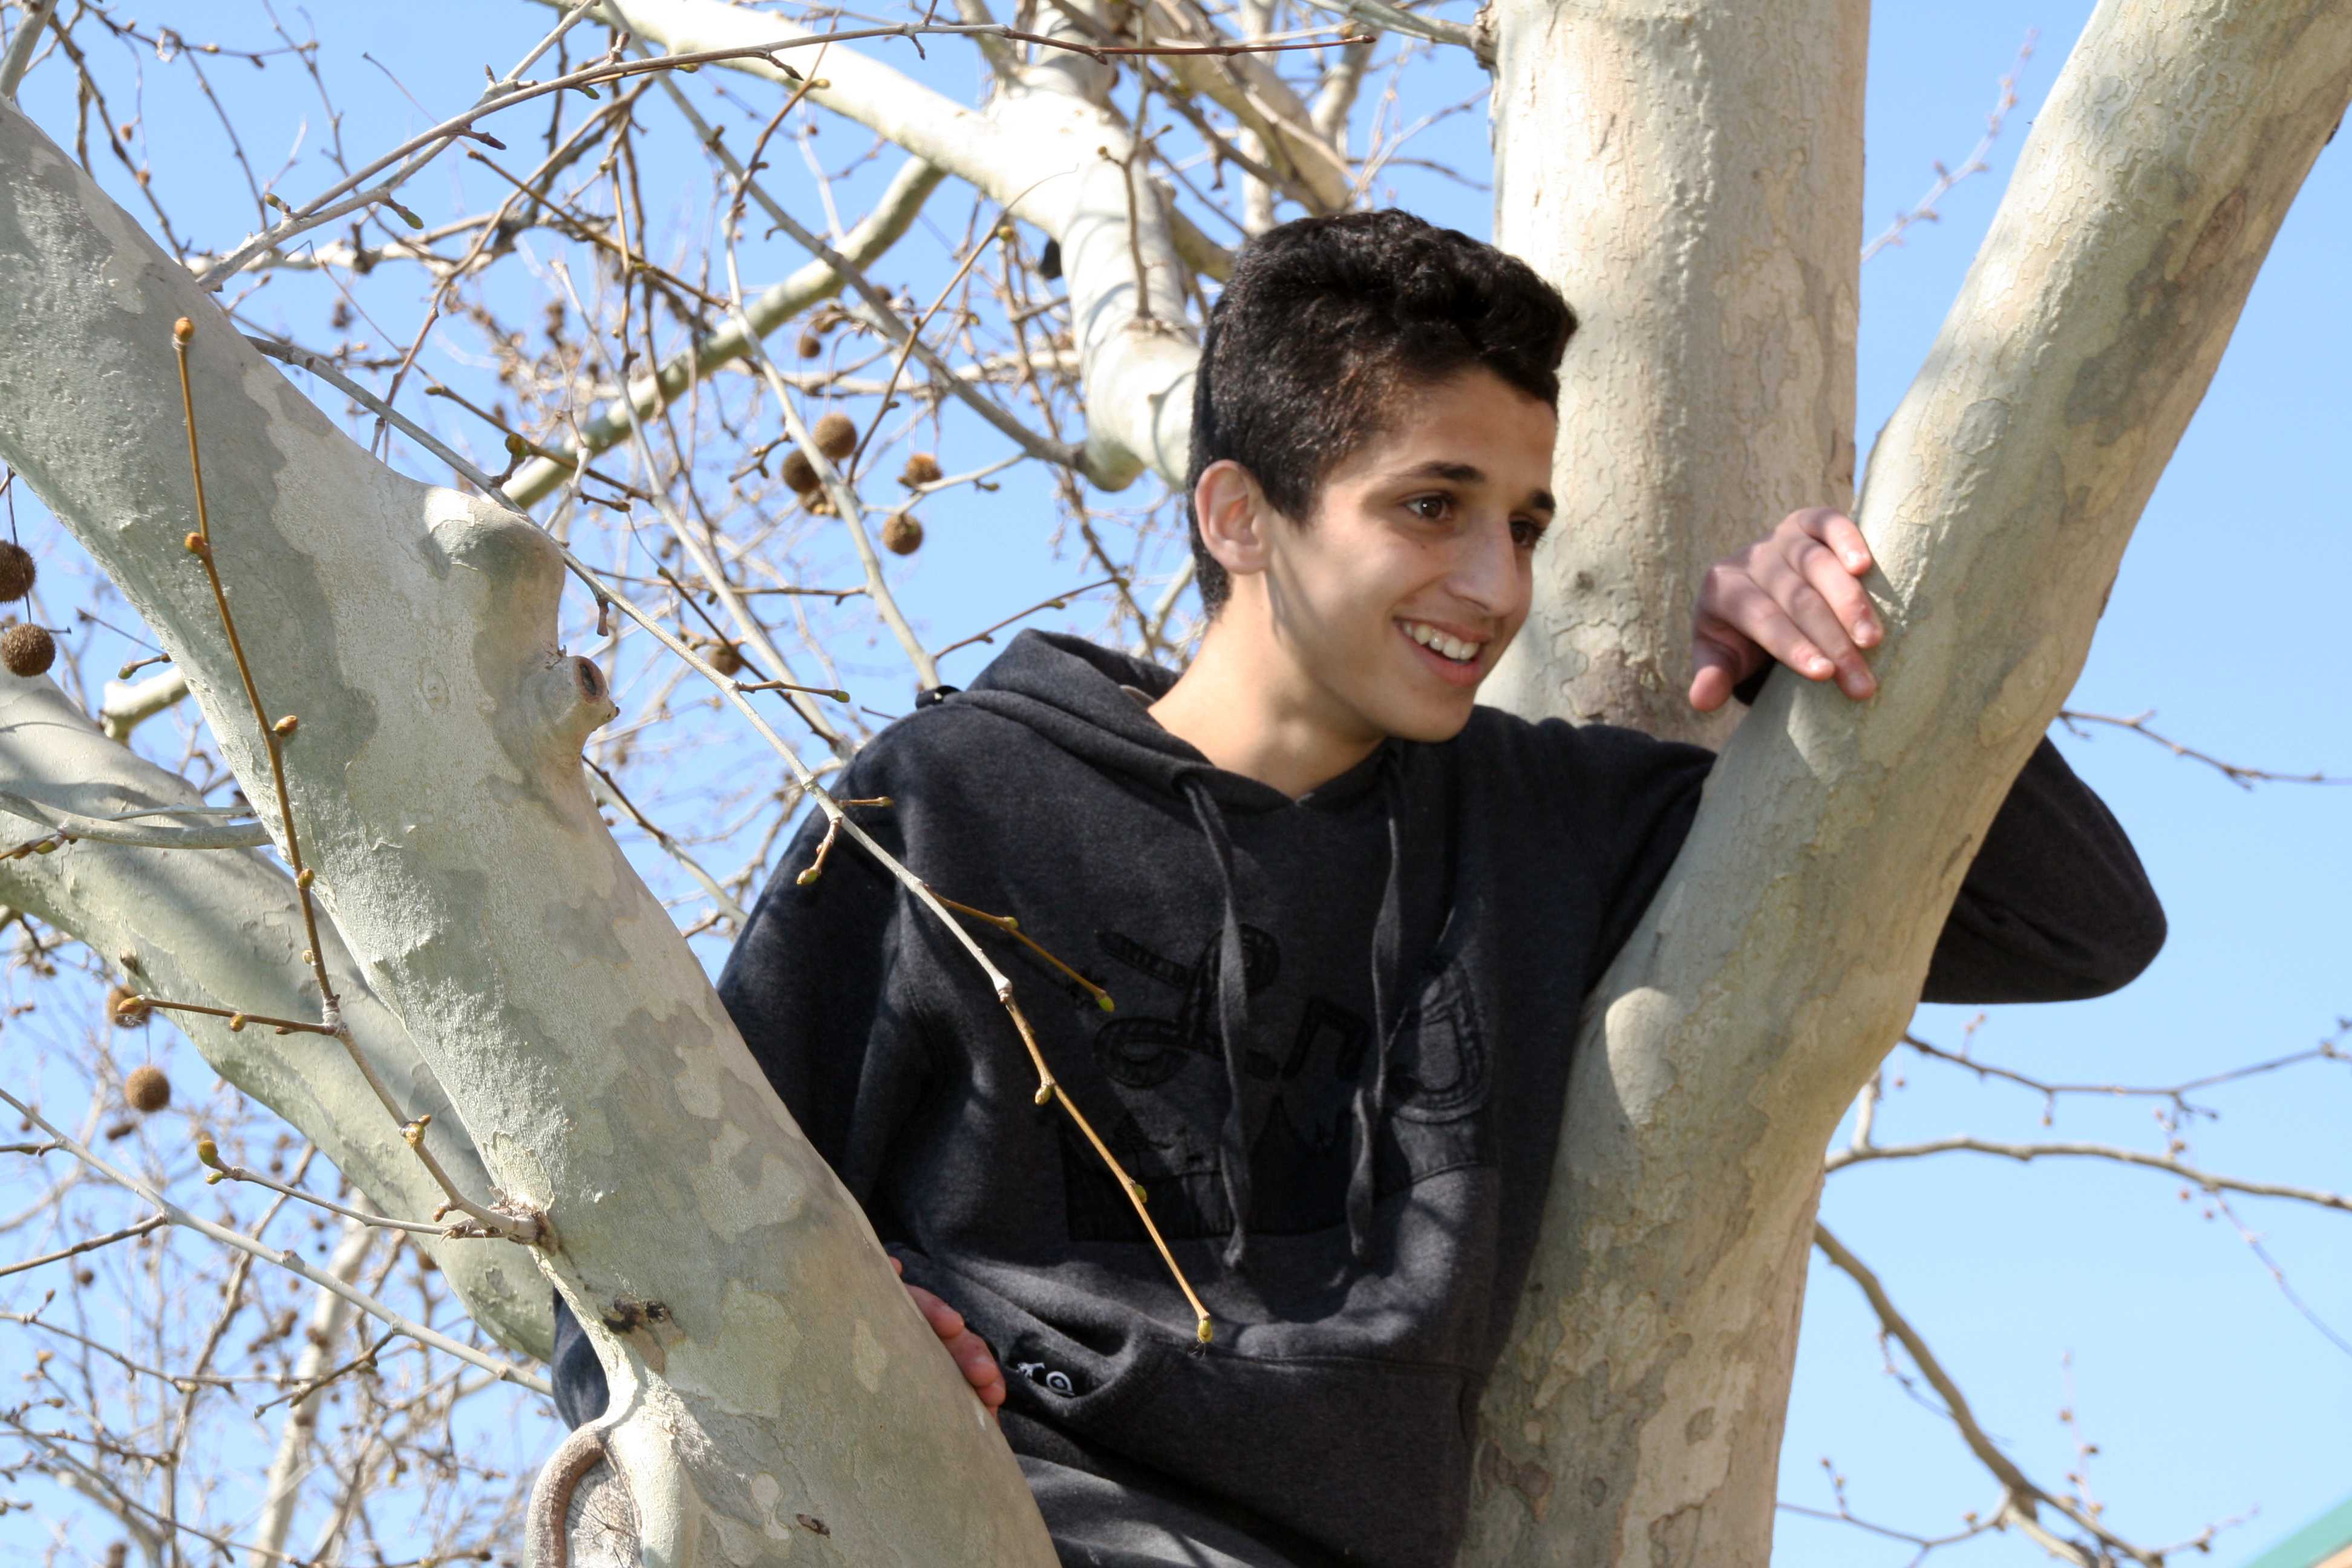 Out shooting for photography freshman Ramzi Taha climbs into a tree to pose  for other students in the class so they could get their shots for the project that they have to turn in soon. For the project they were working on they were required to show different photography compositions Taha climbed the tree in order to model framing. Photo by Hannah Bociek